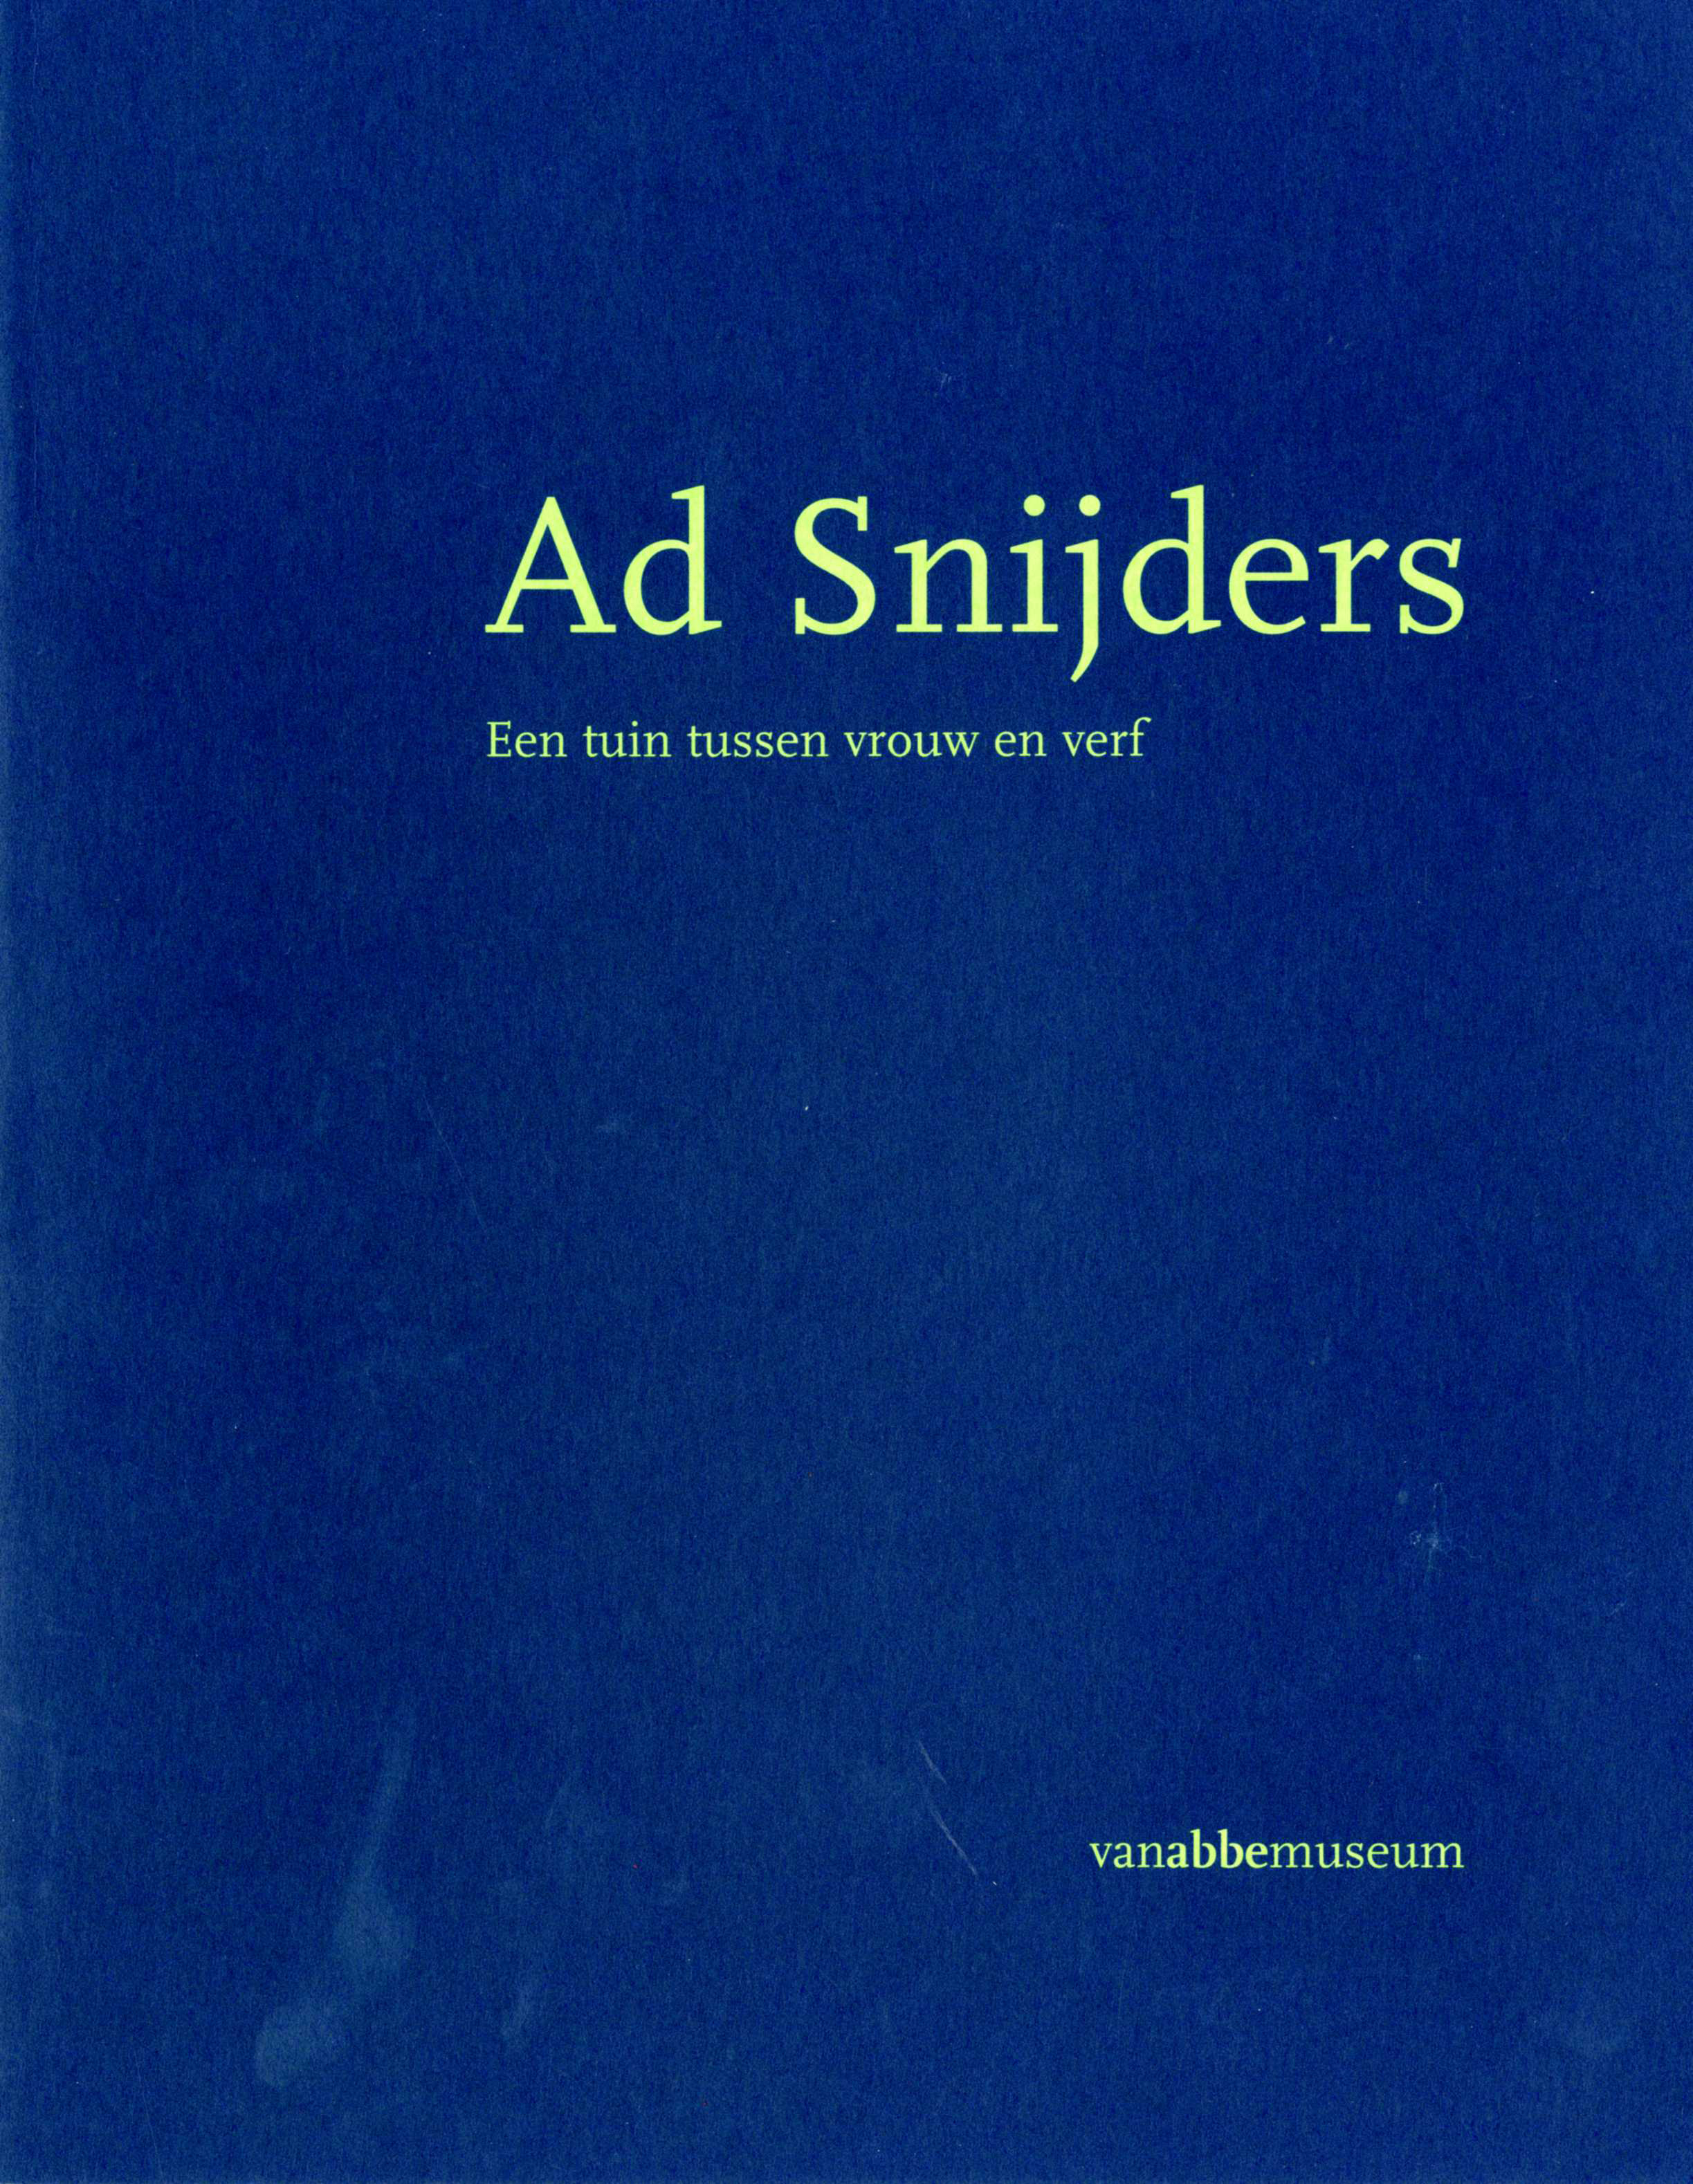 Ad Snijders